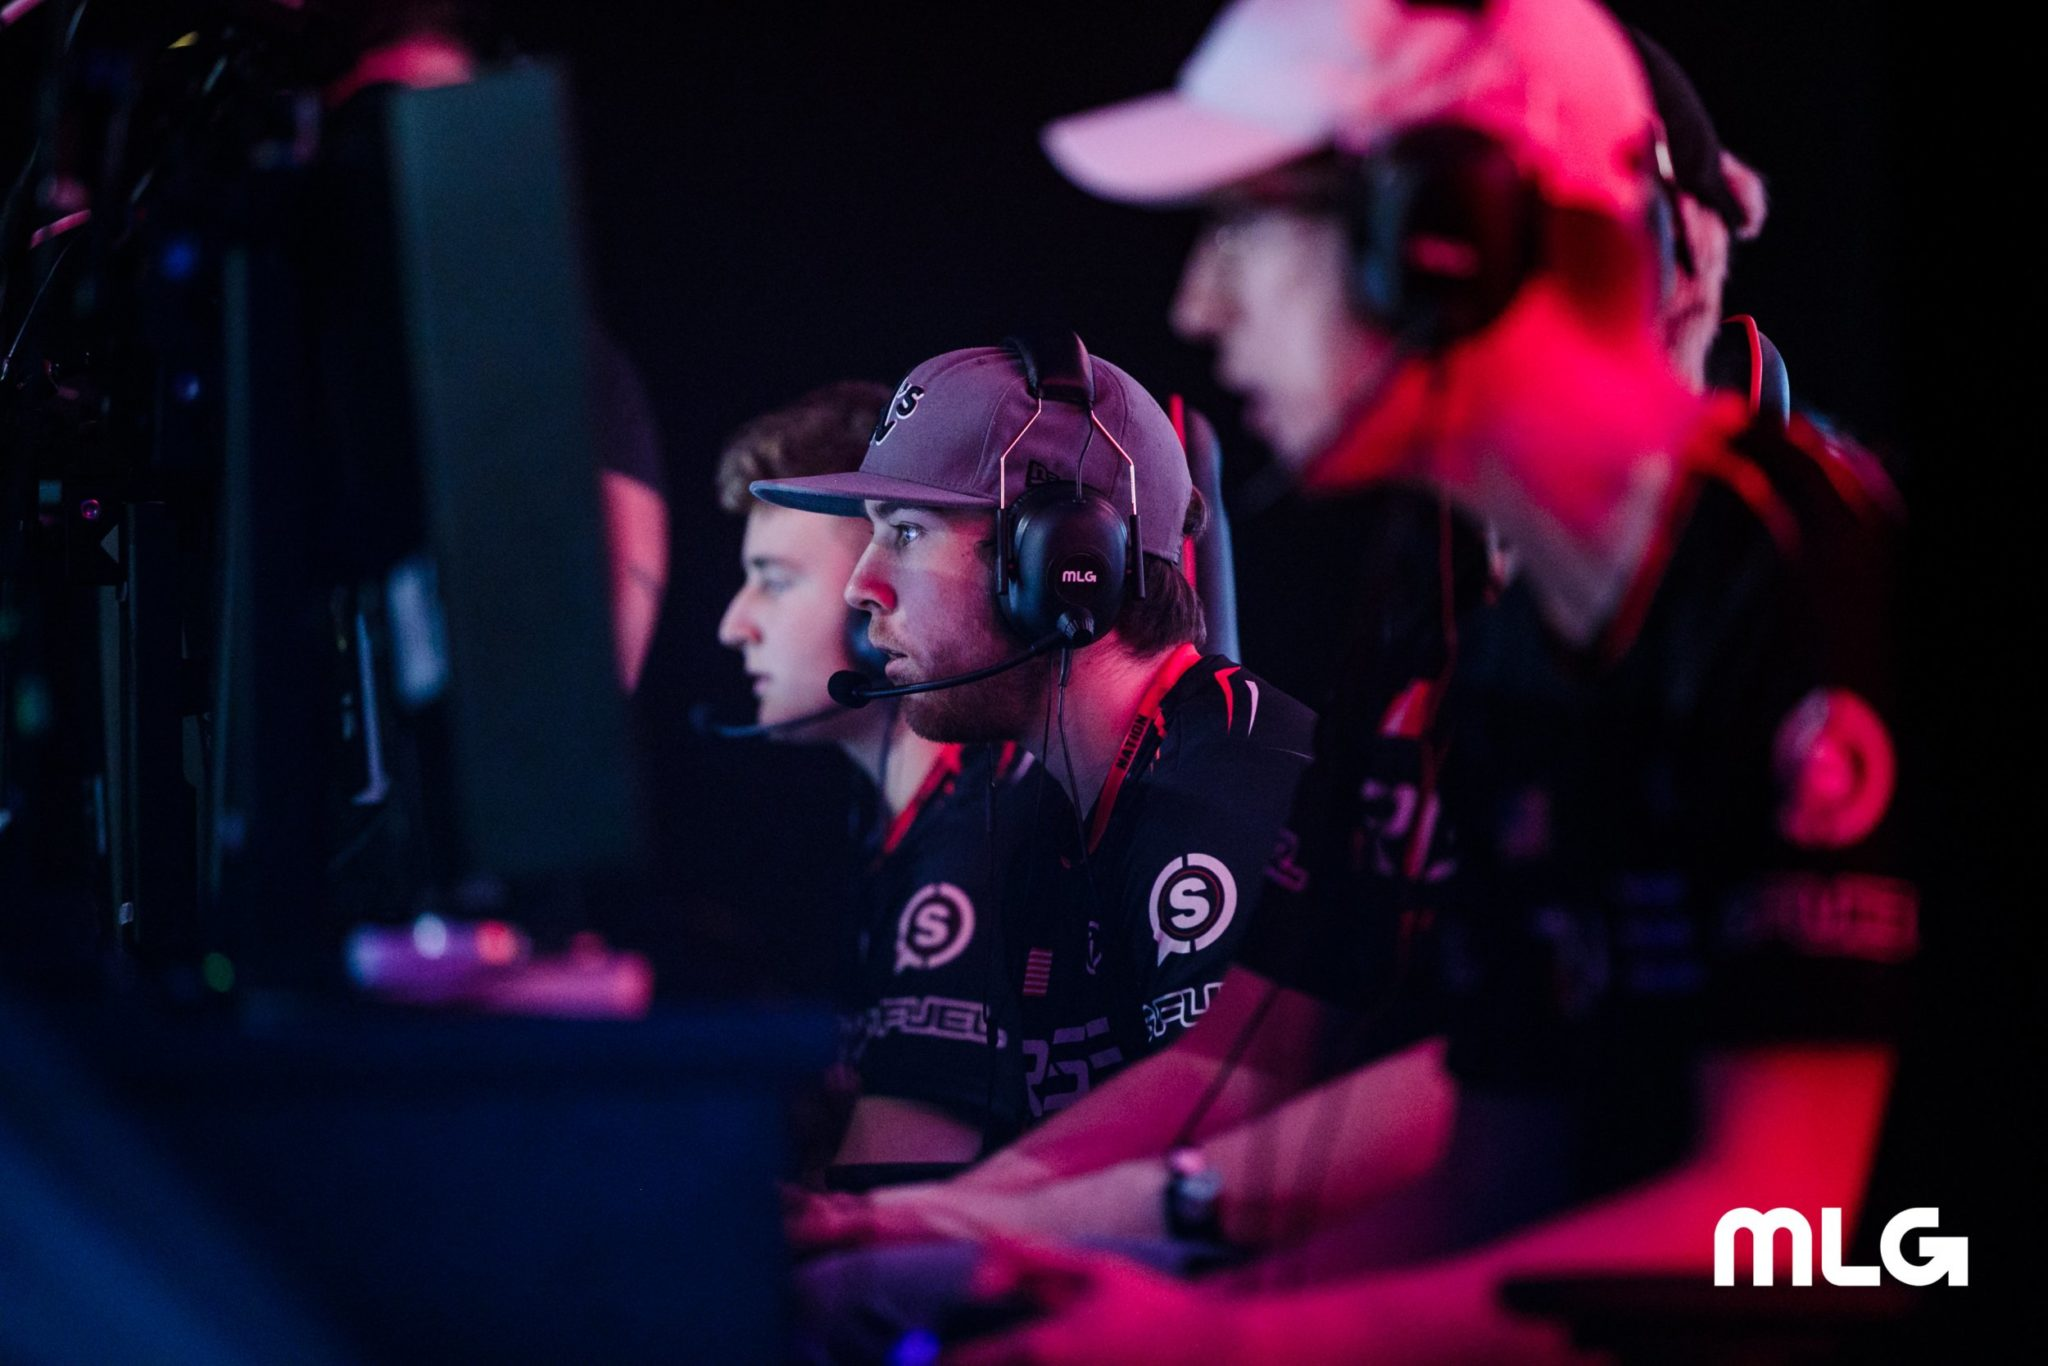 slasher playing cod for rise nation cwl